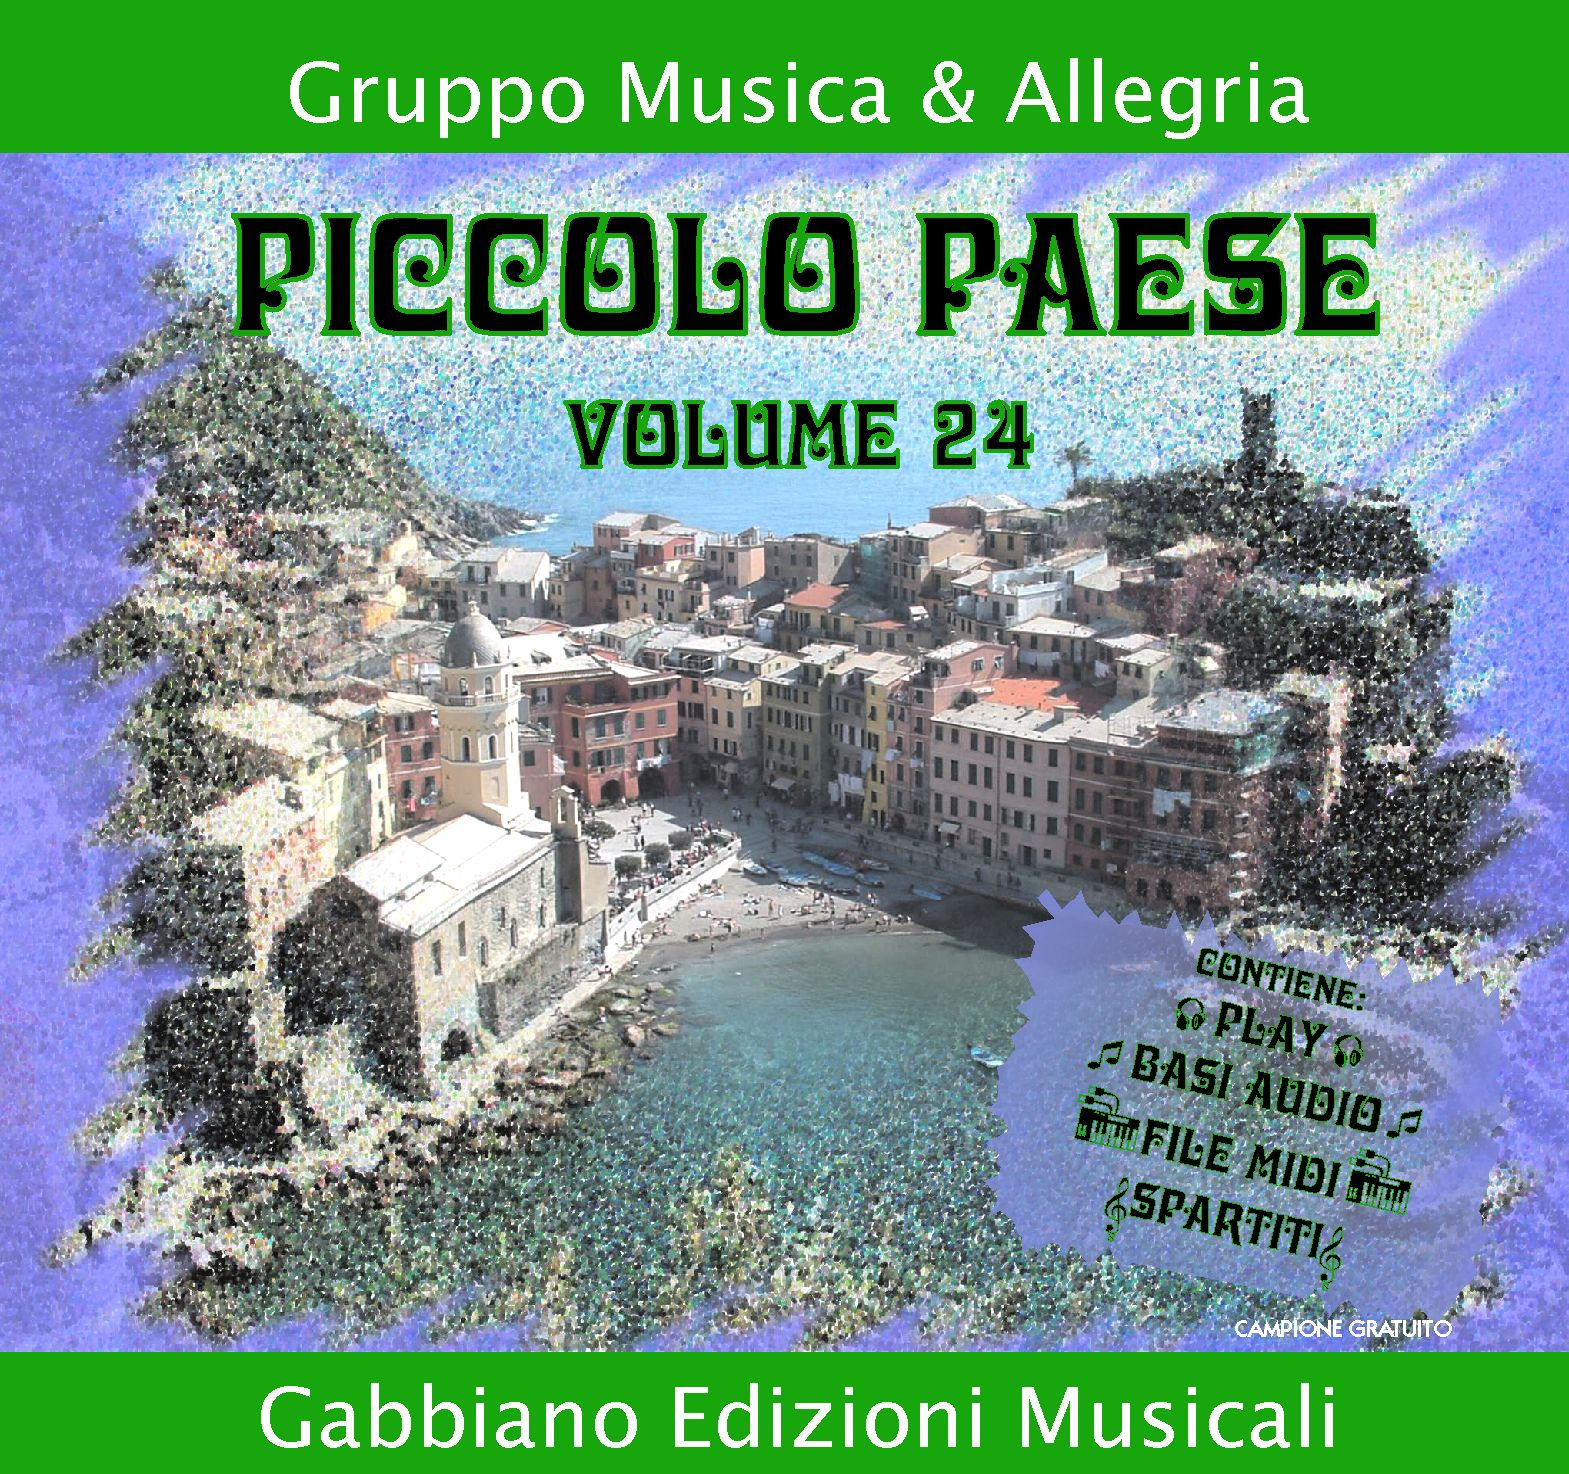 GBN124CD/C - Piccolo paese - Volume 24